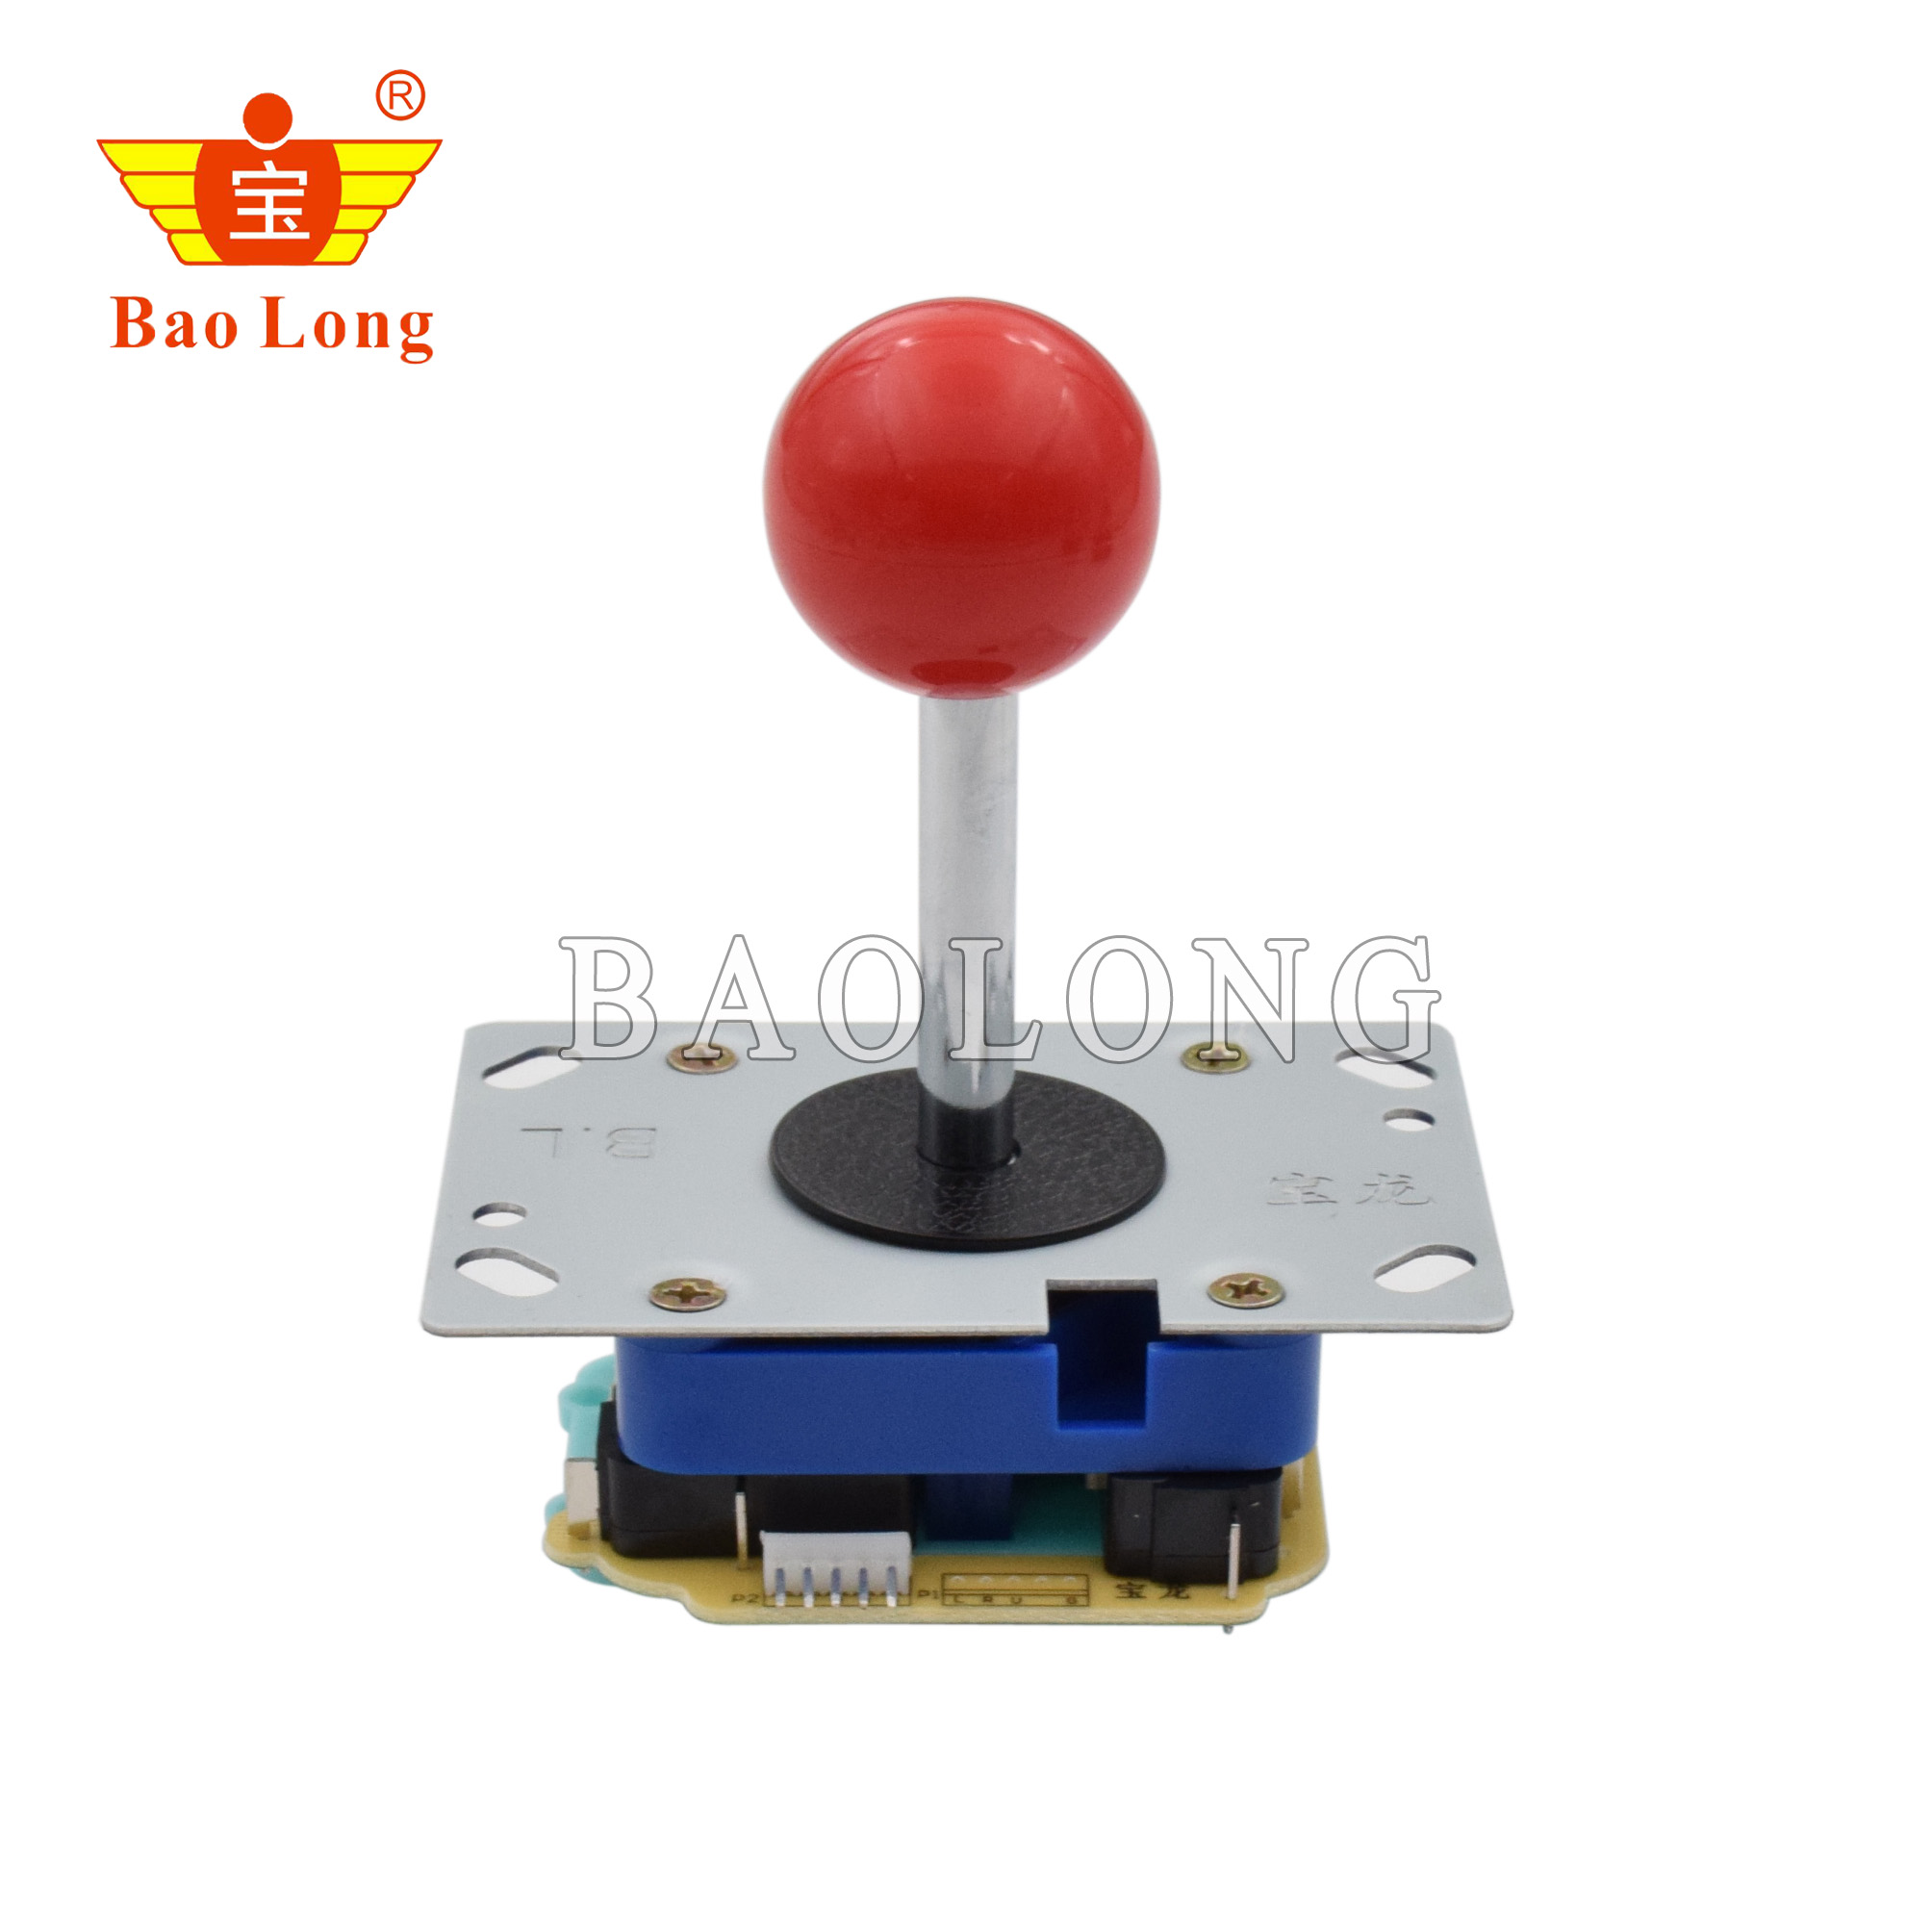 New ZIPPY joystick for Arcade game machine with high quality micro switches for Game Console